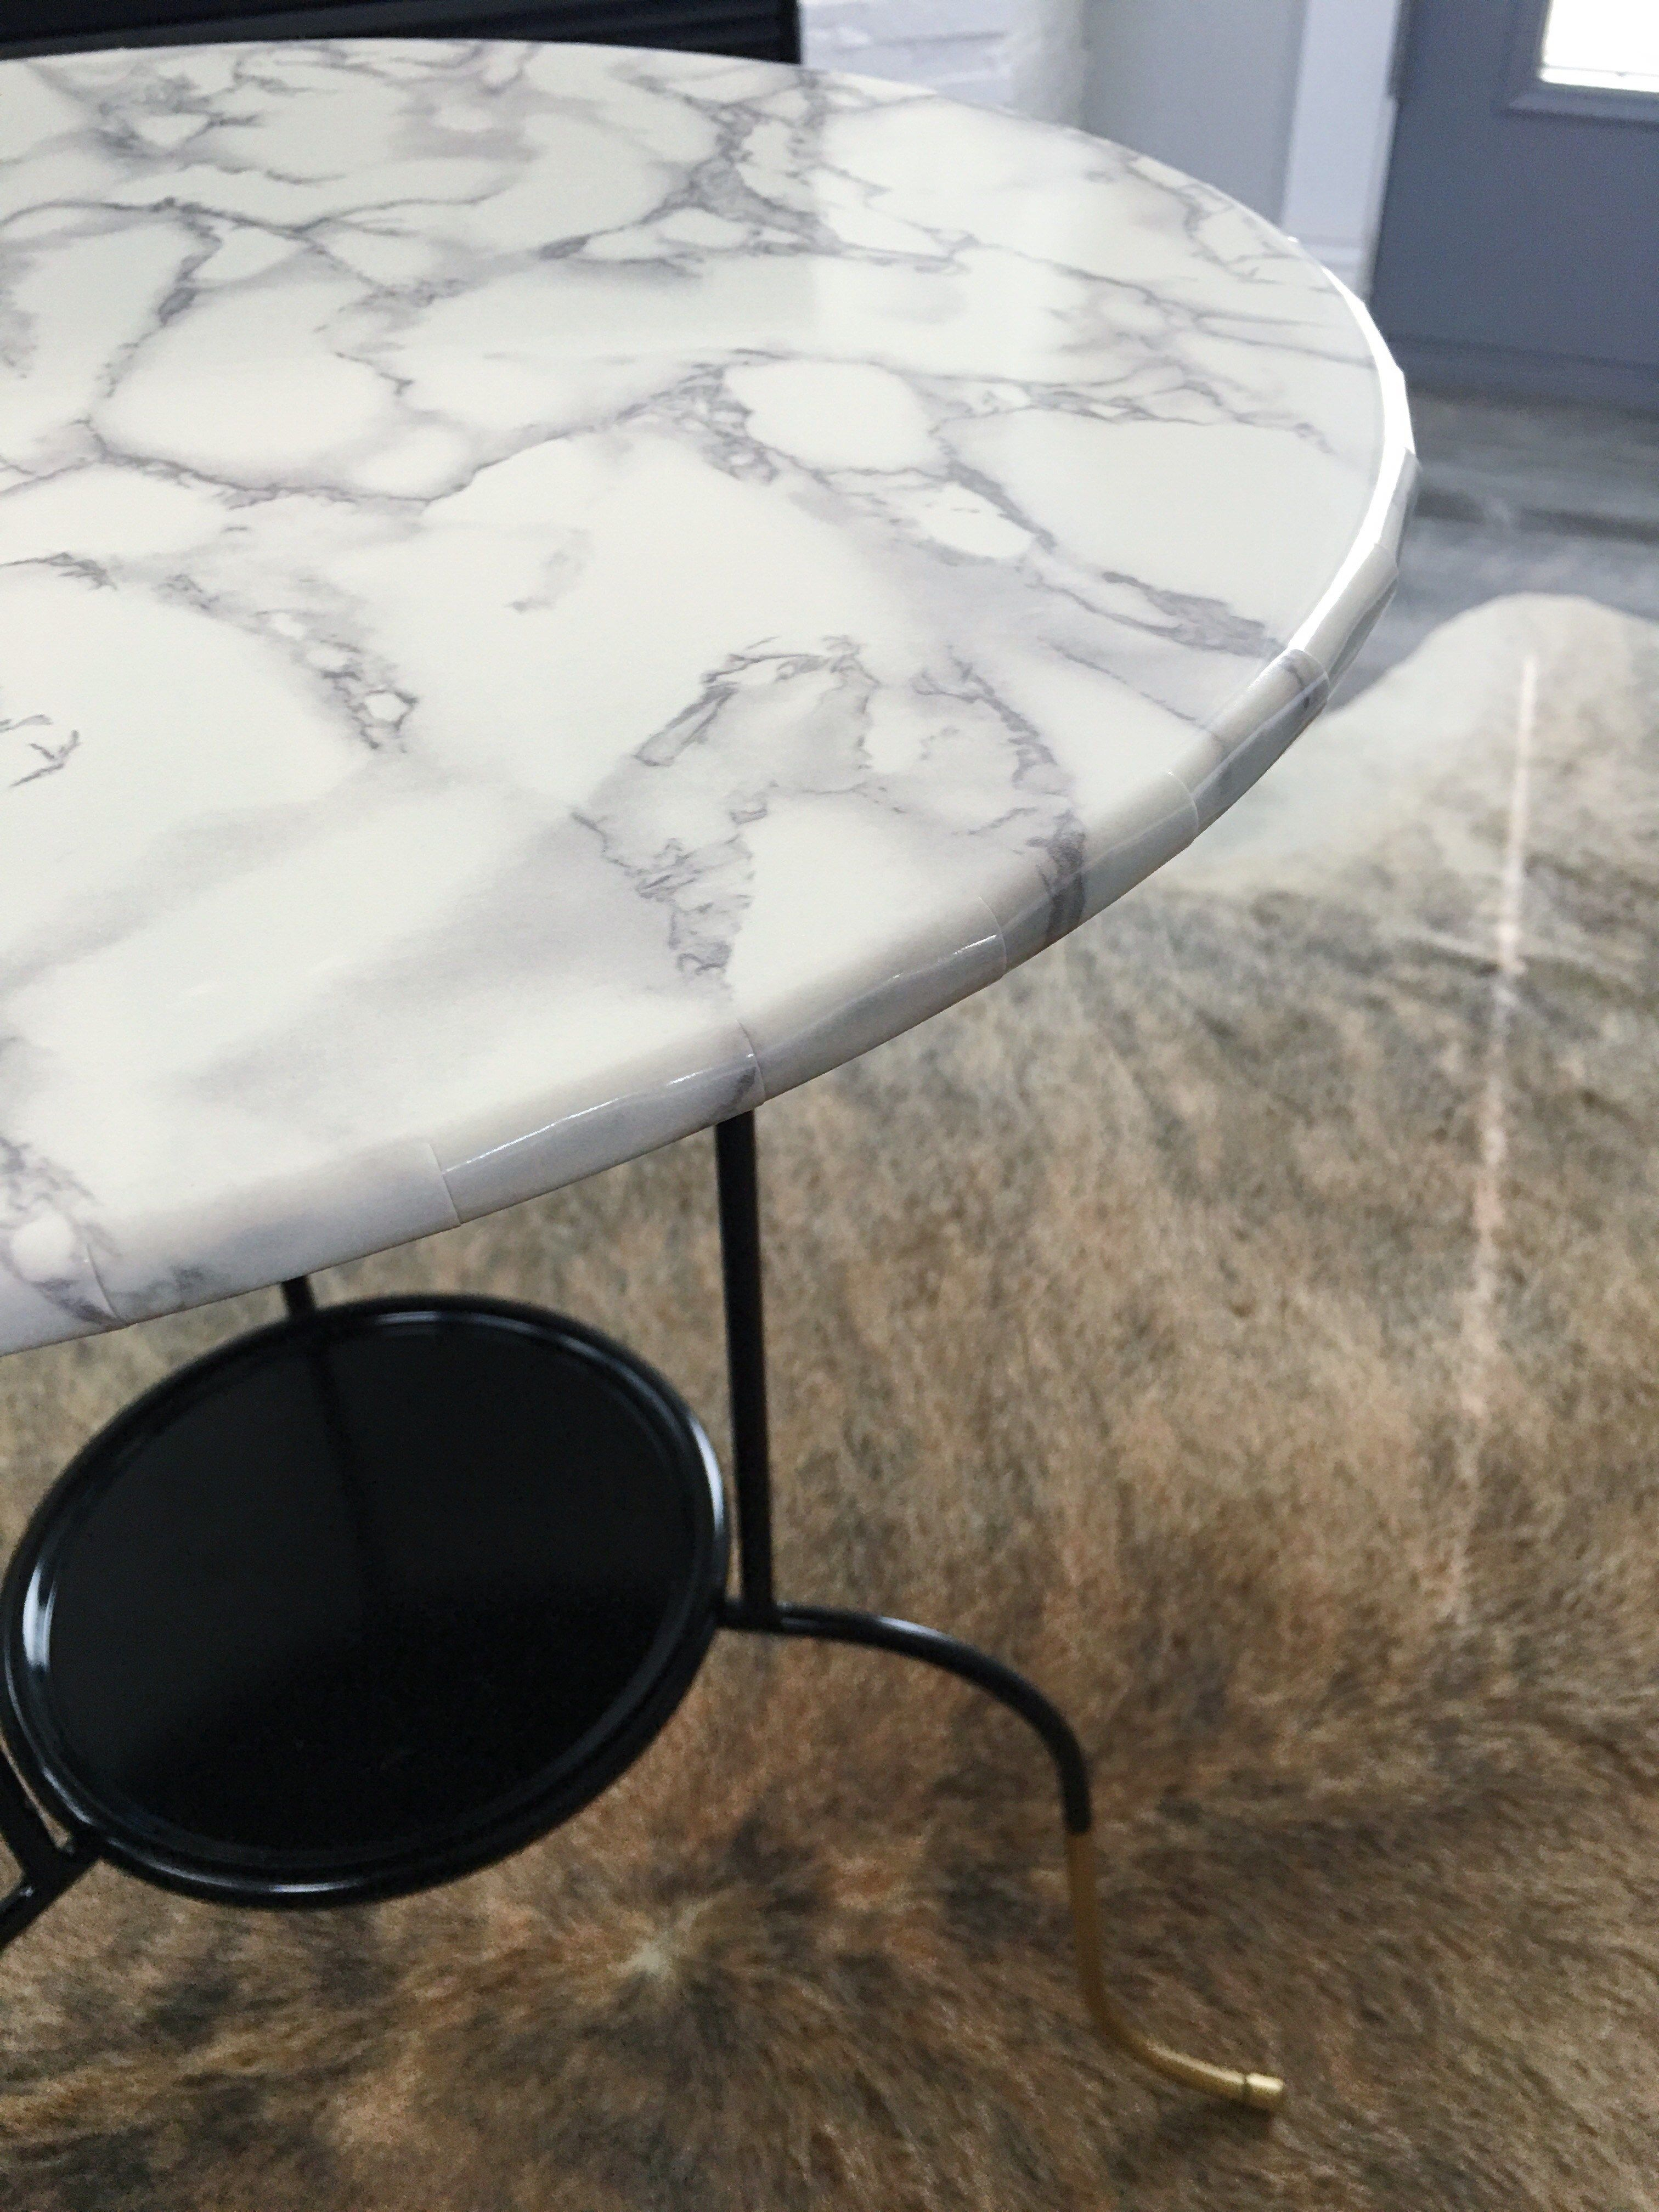 Ikea Hack Lindved Table Marble Top Side Table Marble Contact Paper Closet Ikea [ 4032 x 3024 Pixel ]